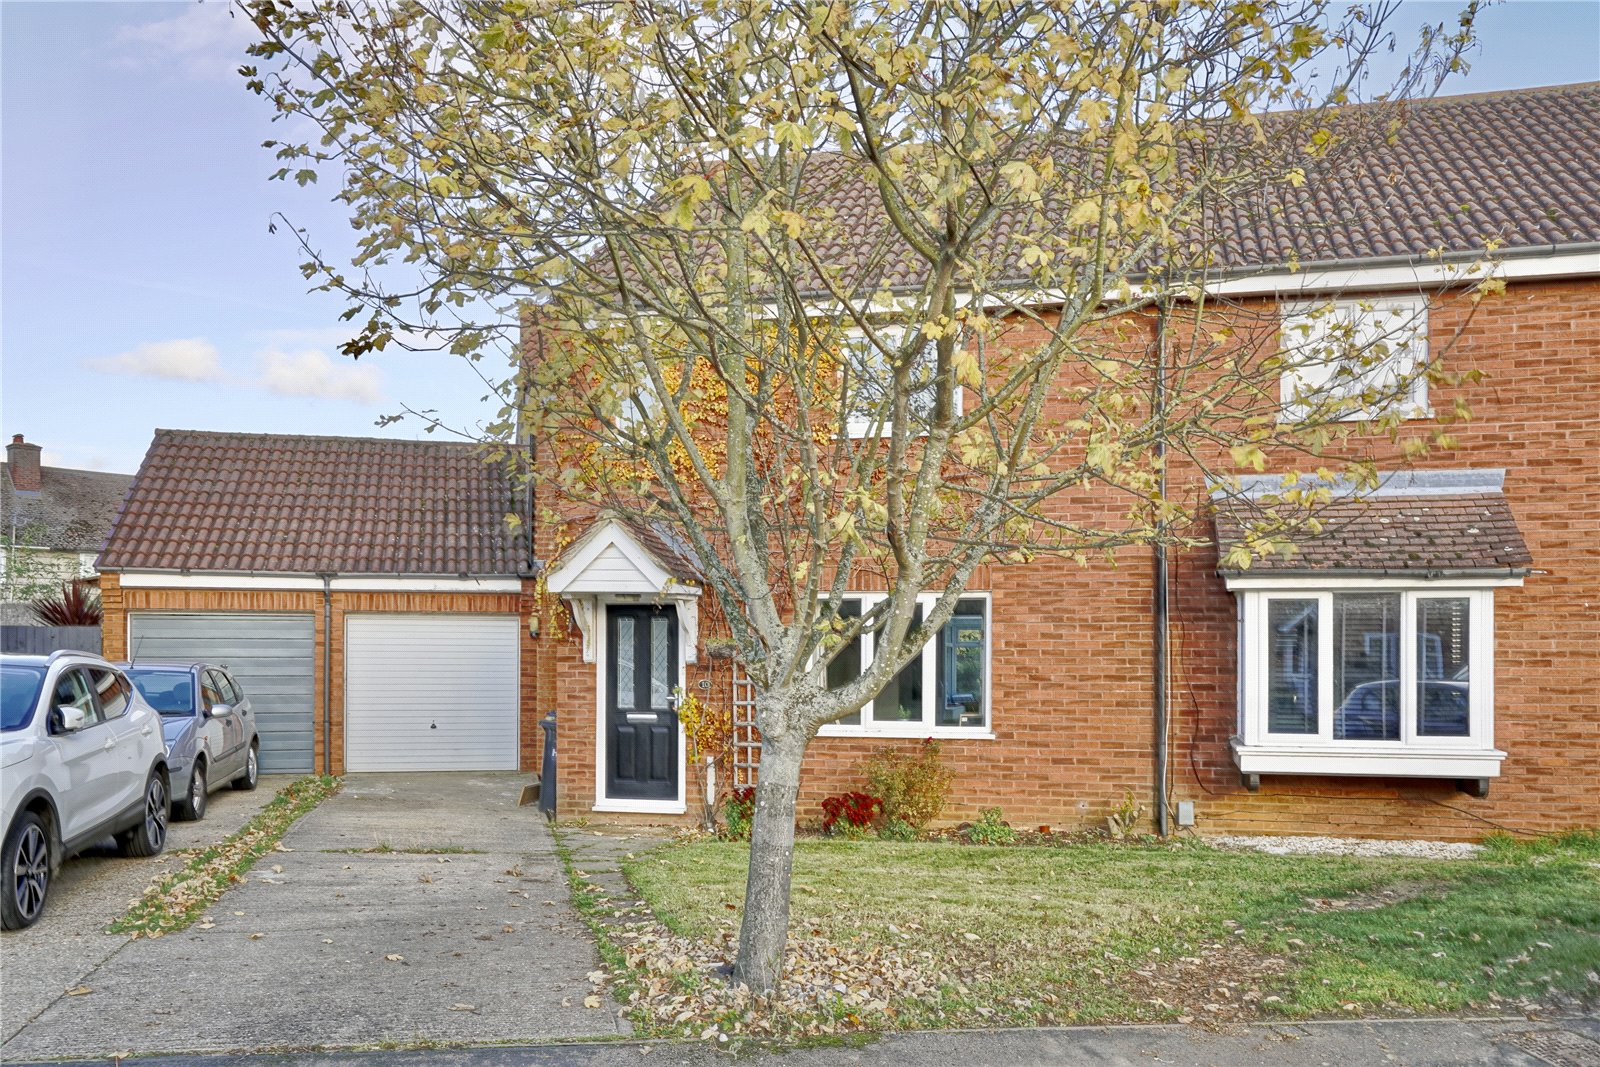 4 bed house for sale in Codrington Court, Eaton Socon 12